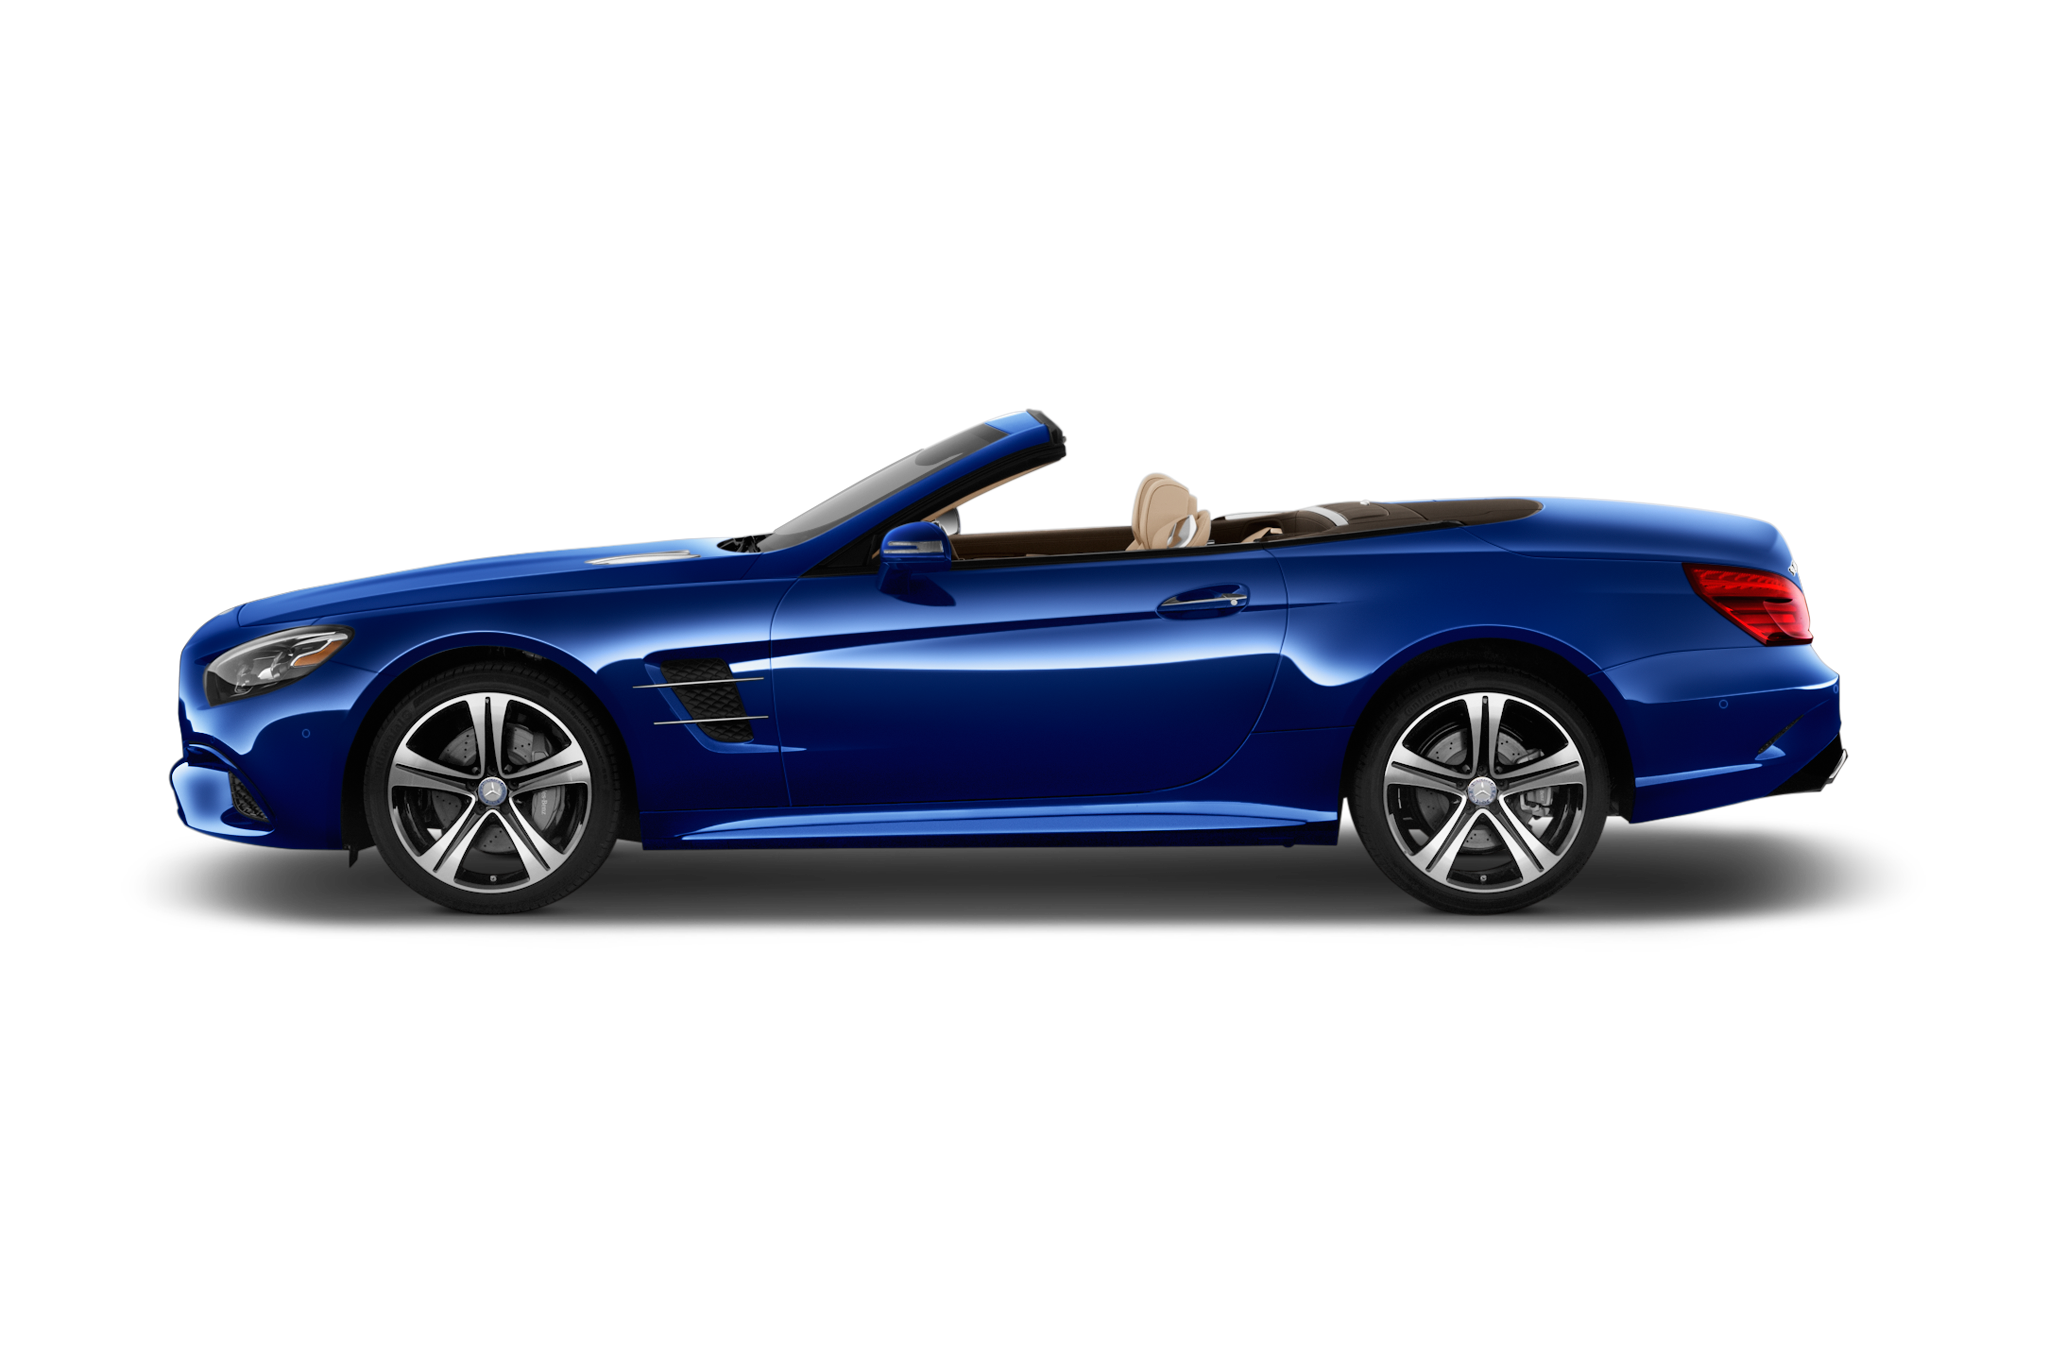 Convertible sports car clipart vector free Mercedes-Benz SL500 - Road Test & Review - Automobile Magazine vector free